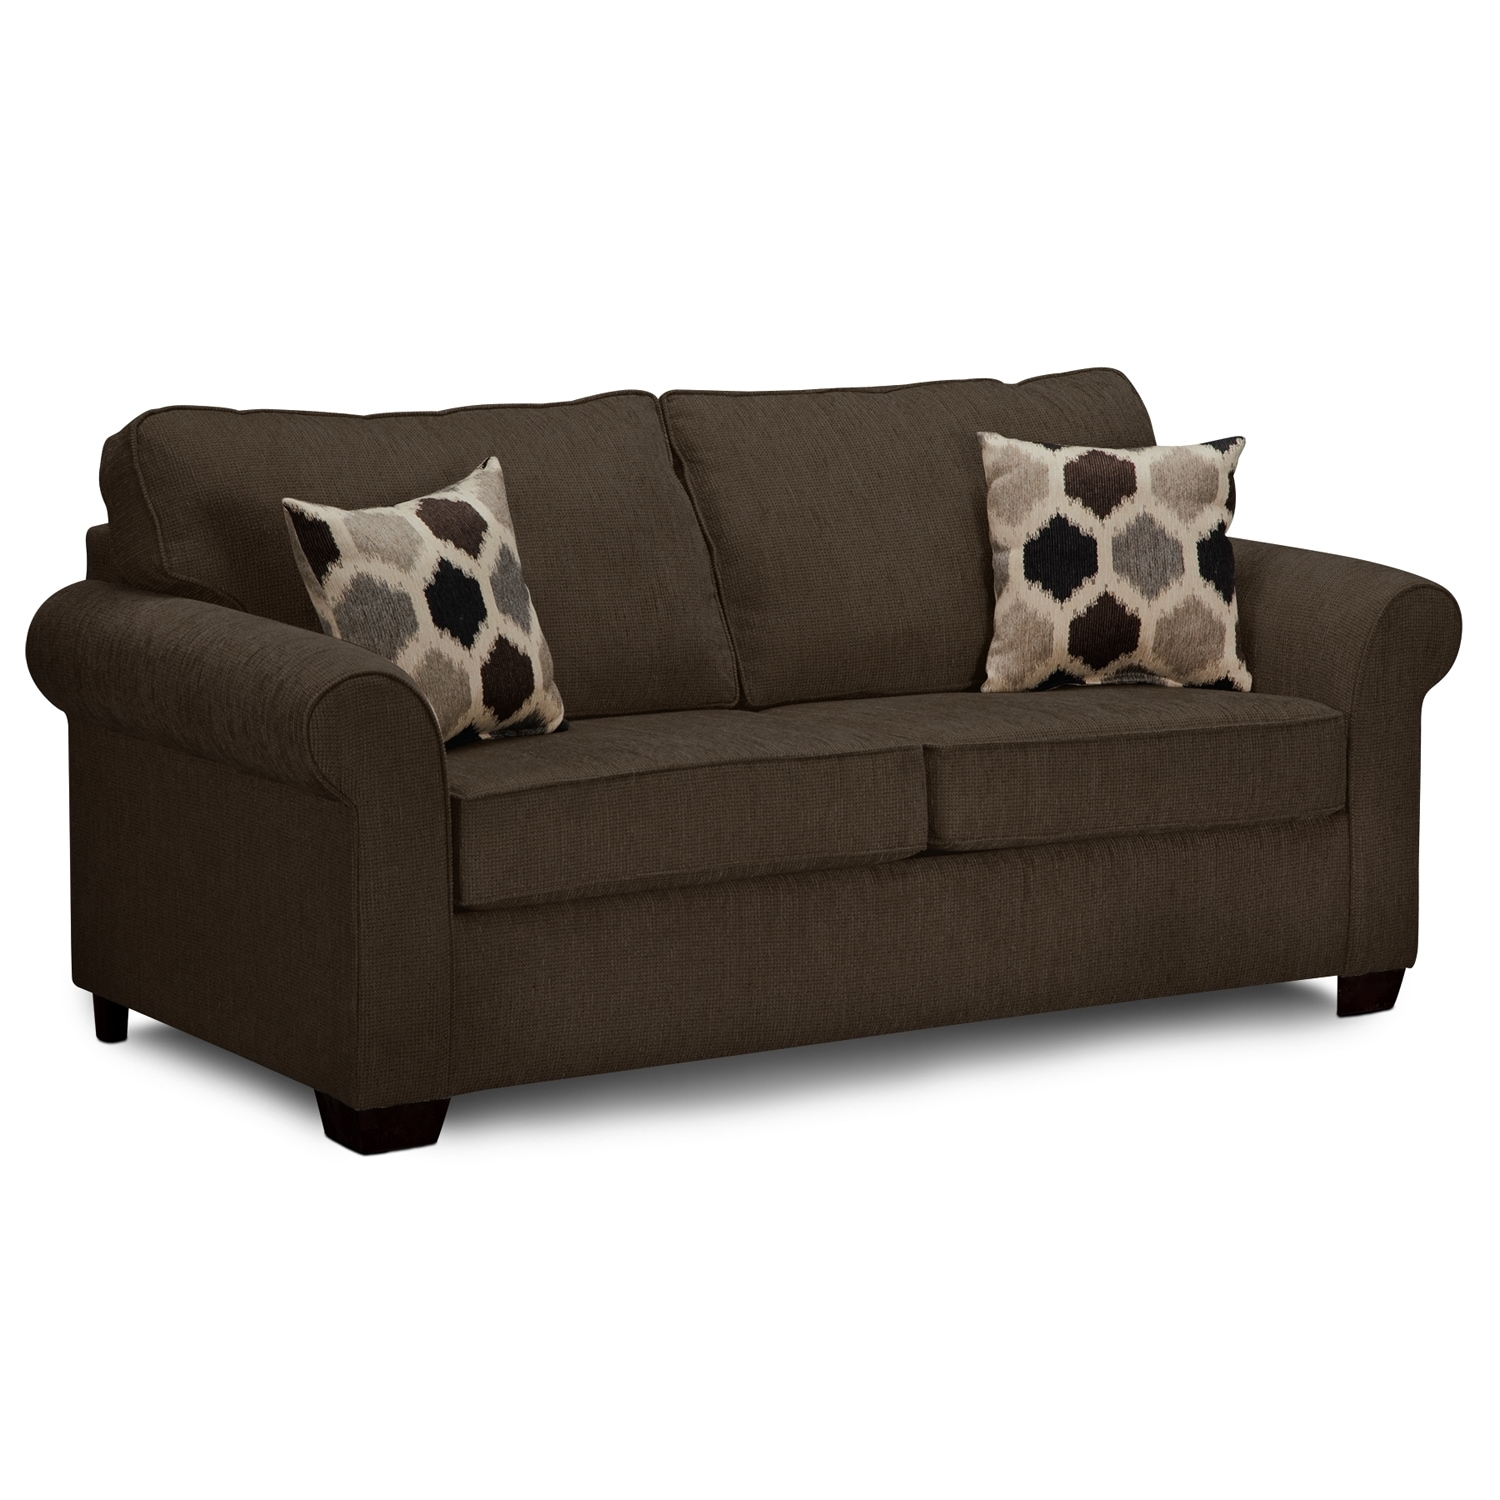 Fletcher Ii Upholstery Full Sleeper Sofa Value City Furniture